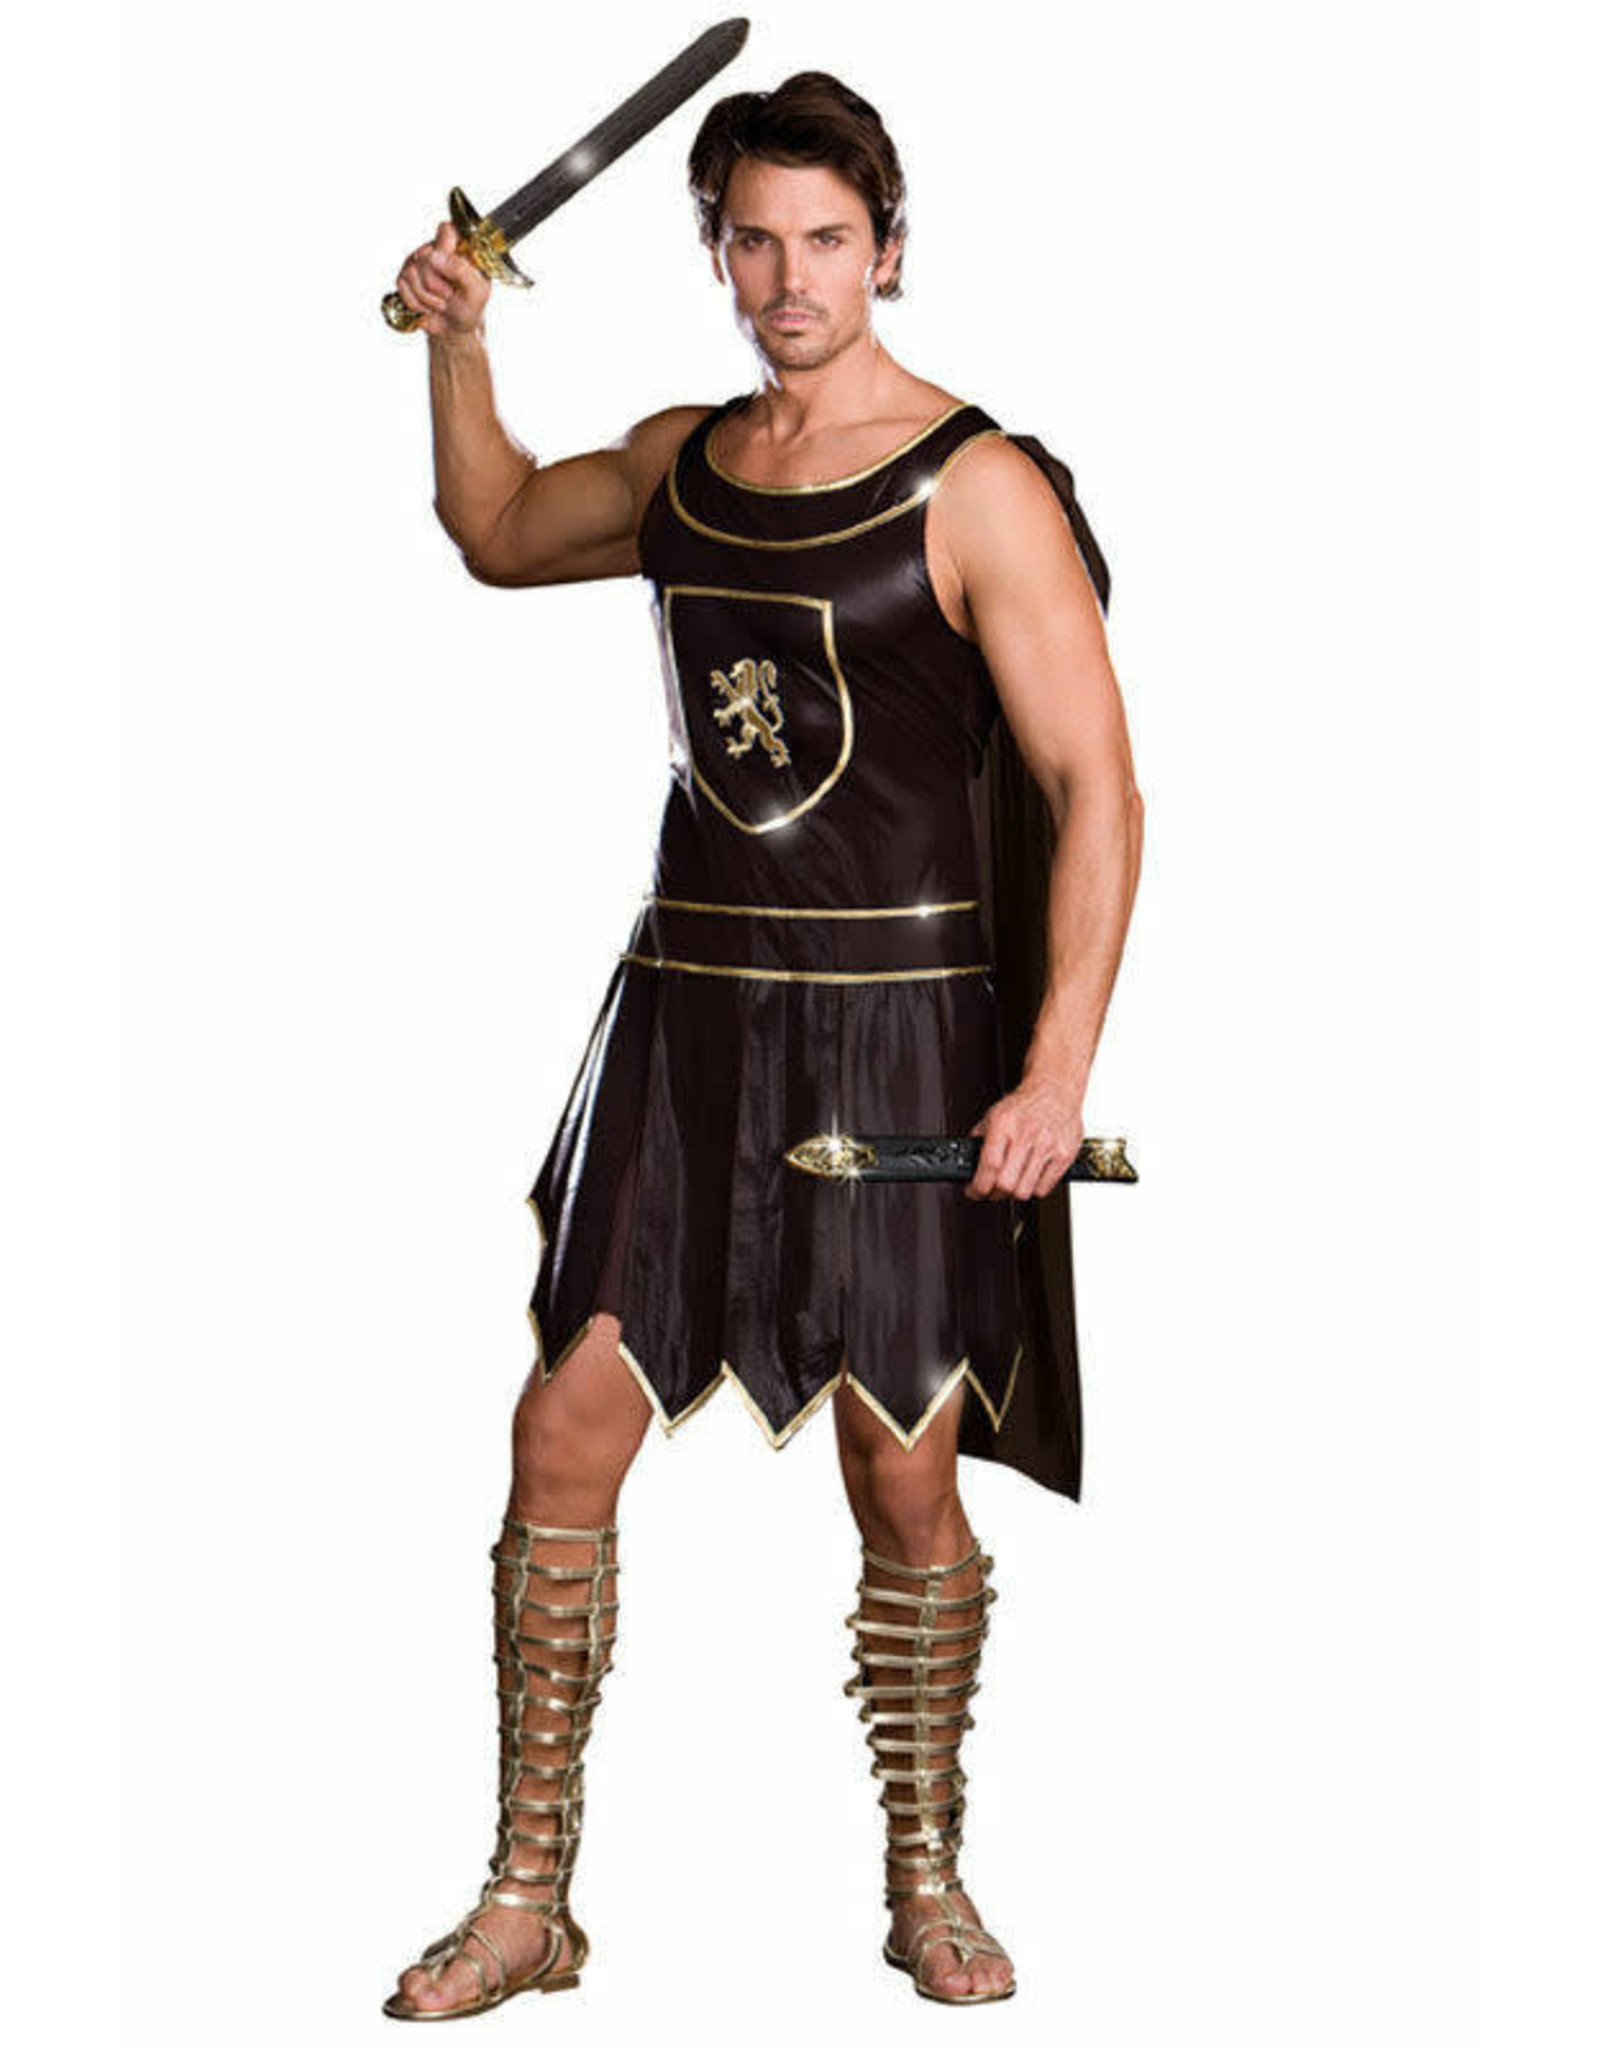 DREAMGUY DREAMGUY - BABE-A-LONIAN WARRIER KING - XL - COSTUME